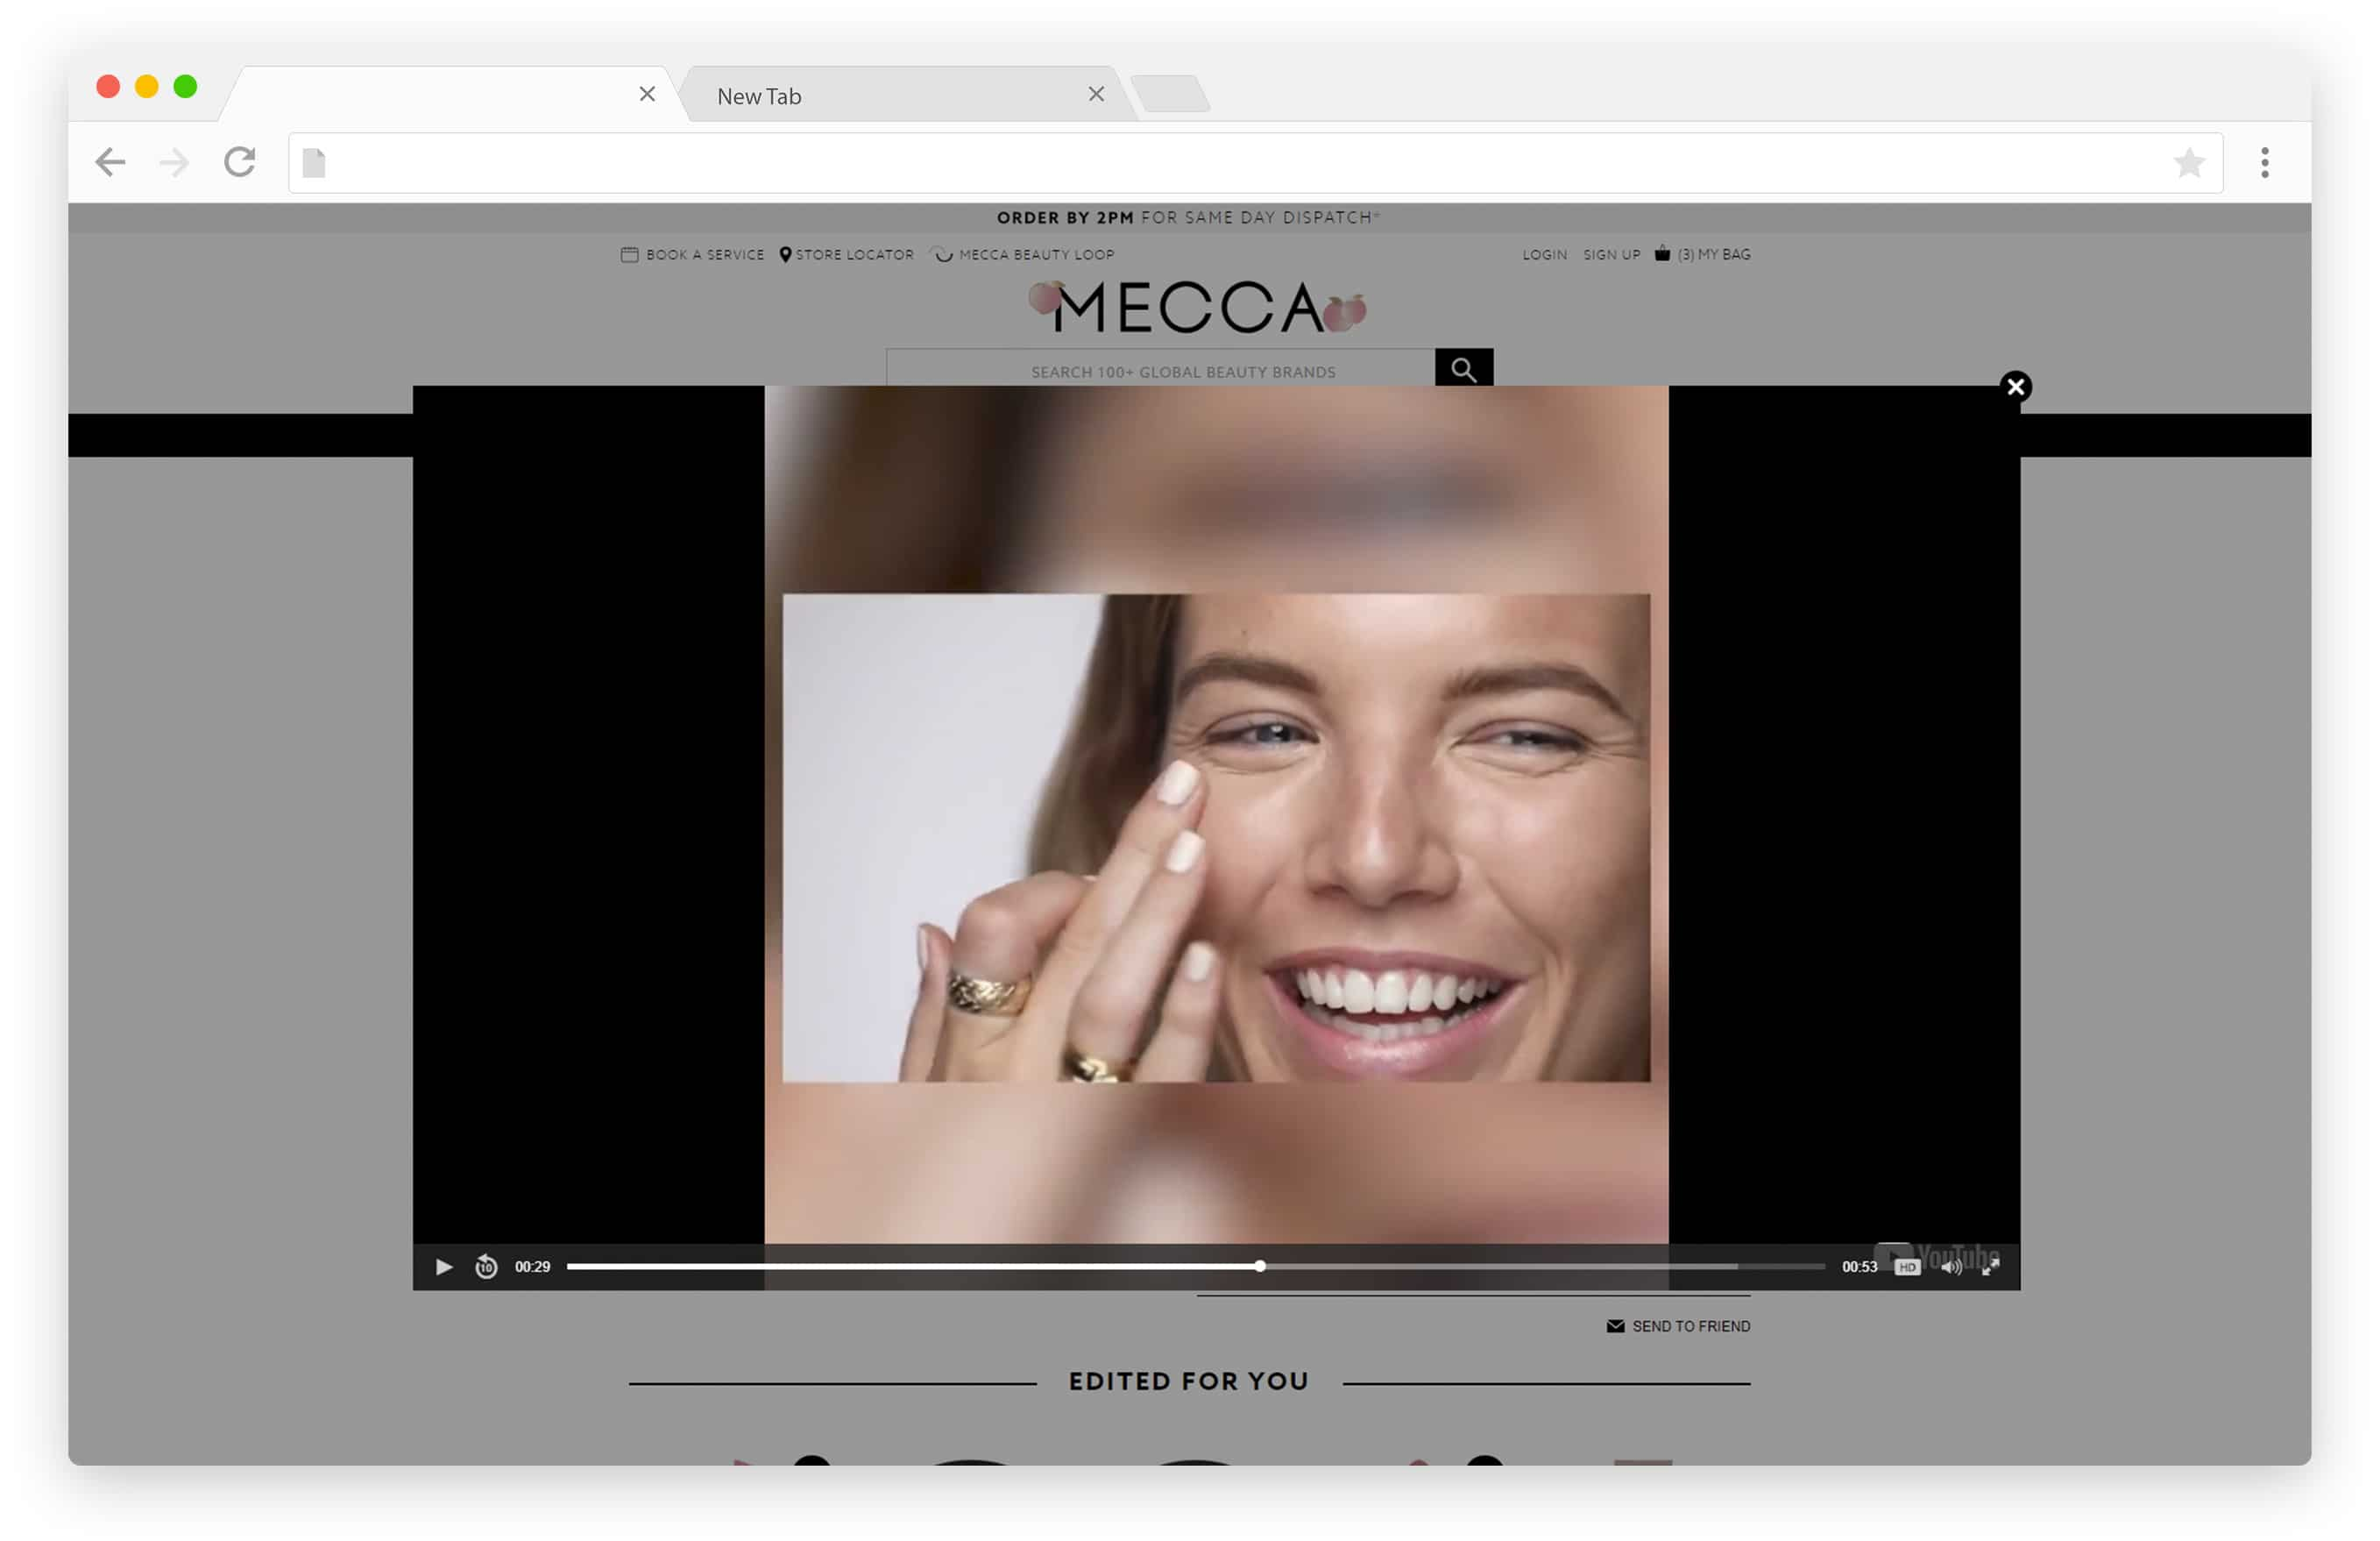 Mecca Video Content